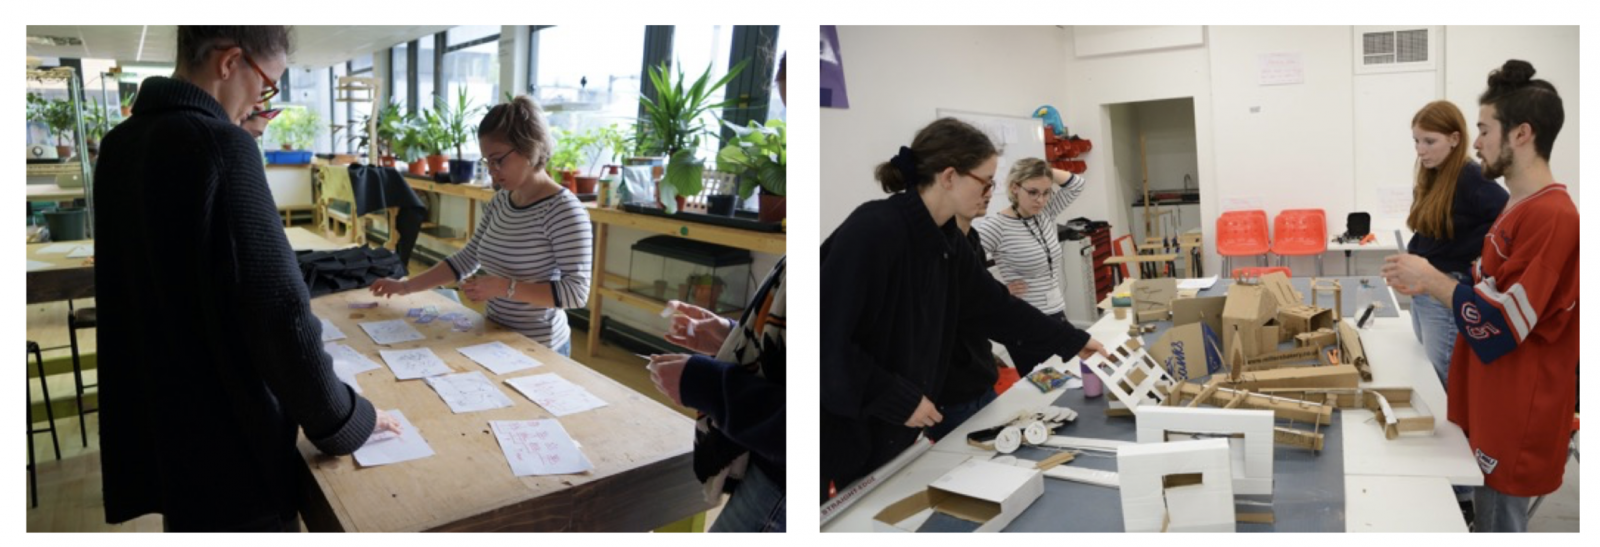 Open Design Manufacturing Od M At Tate Exchange A Case Study Digitalmakercollective Org